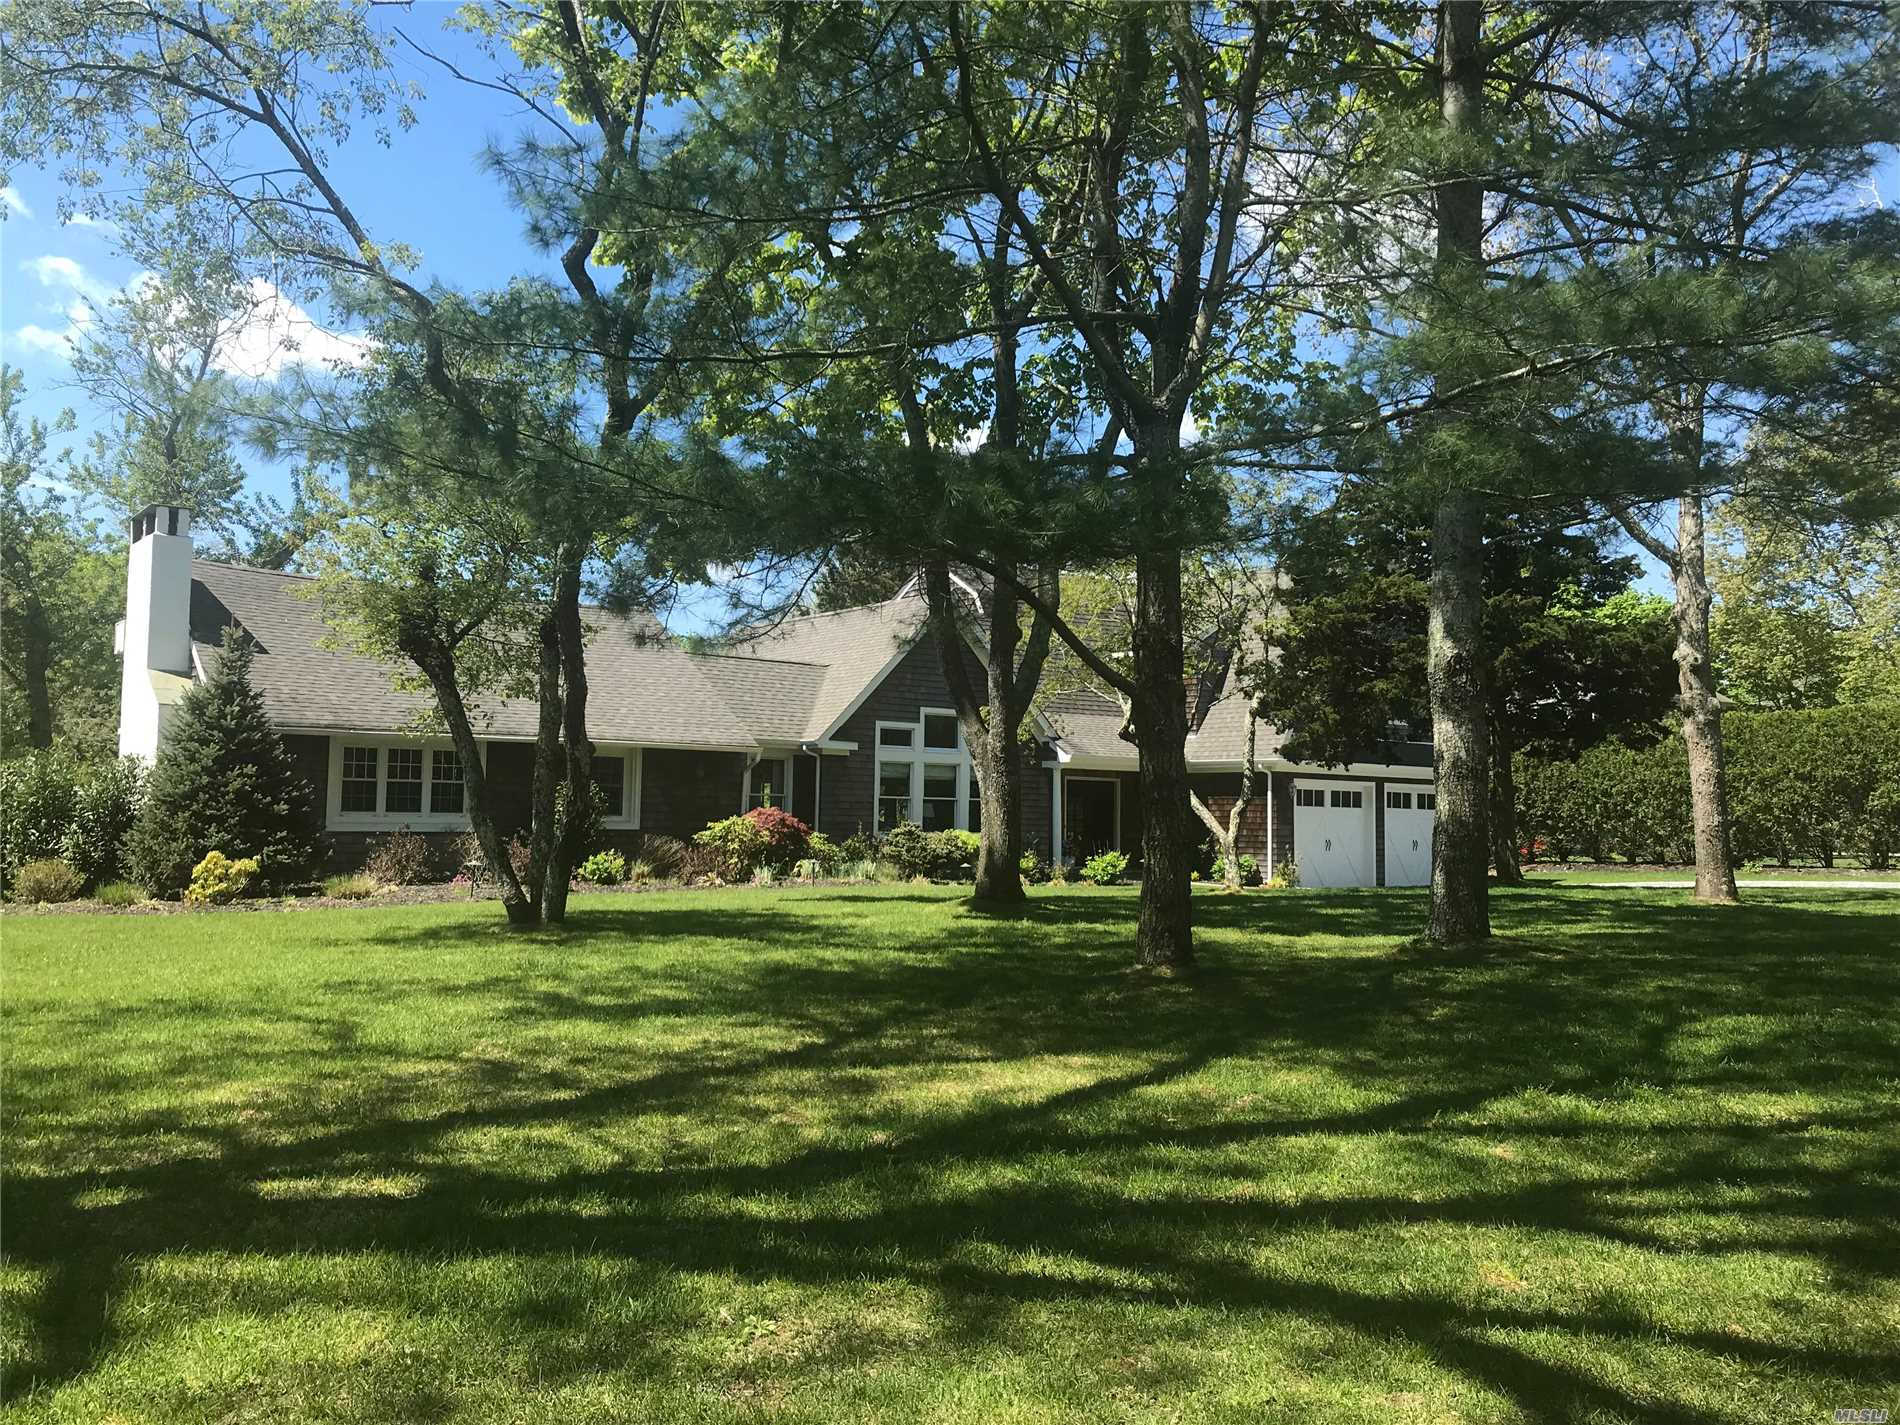 18 Weesuck Ave, E. Quogue, NY 11942 now has a new price of $75,000!